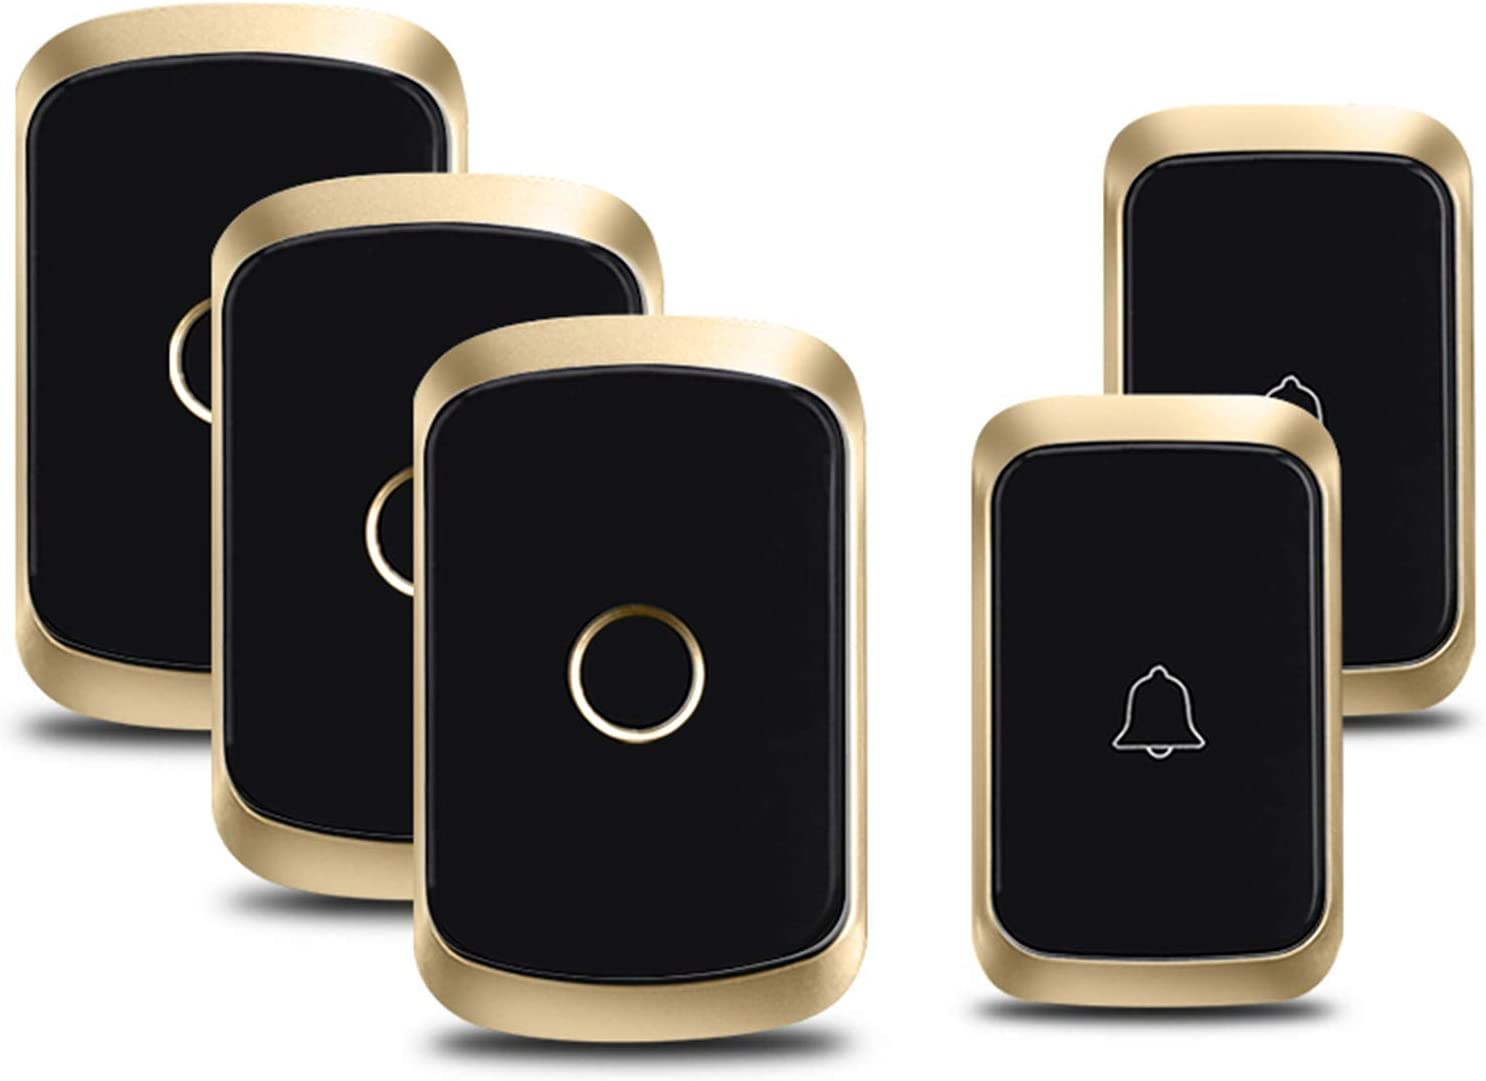 QGGESY Wireless Doorbell Wall Plug-in Cordless Chime Cash special price Waterp 25% OFF Door